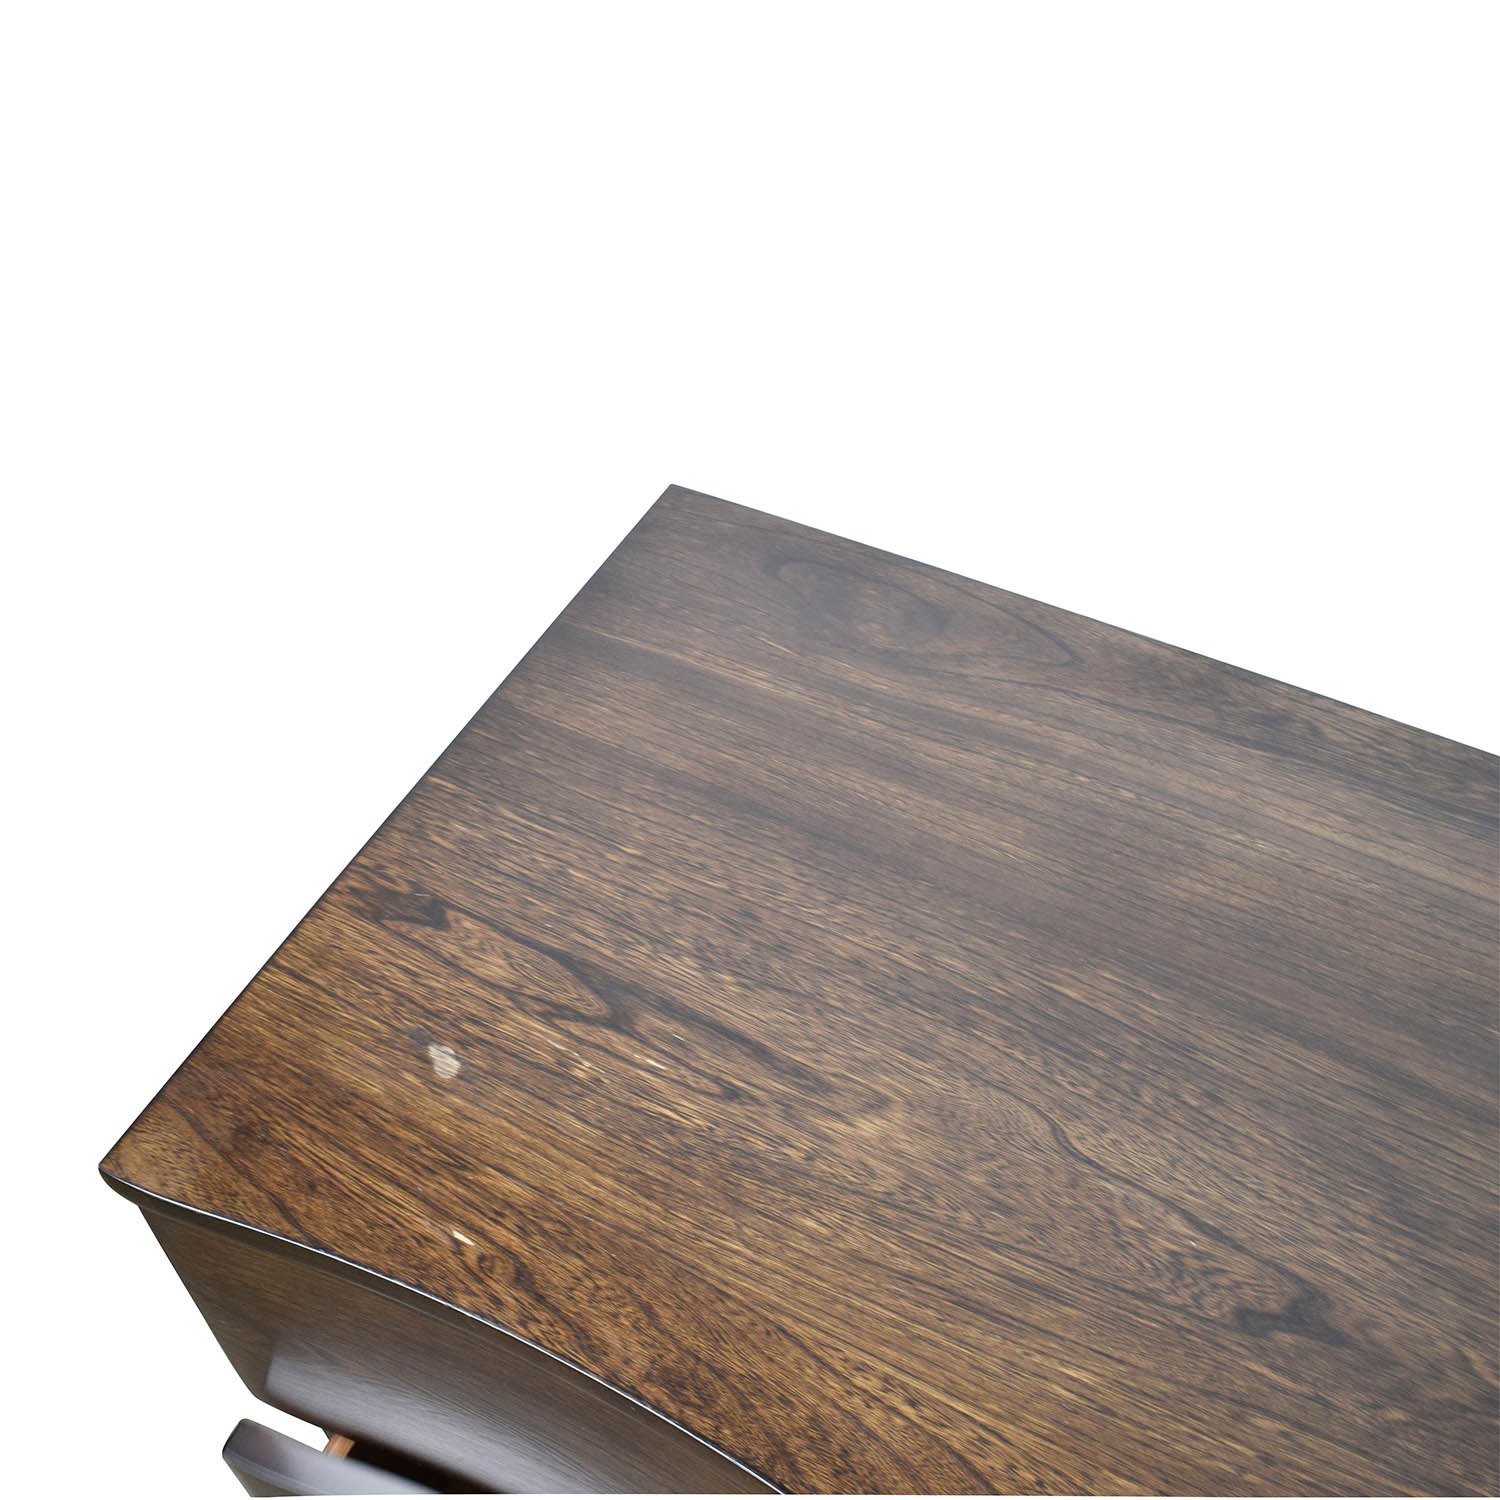 87% OFF - Raymour and Flanigan Raymour & Flanigan Curved Wood Nightstand / Tables